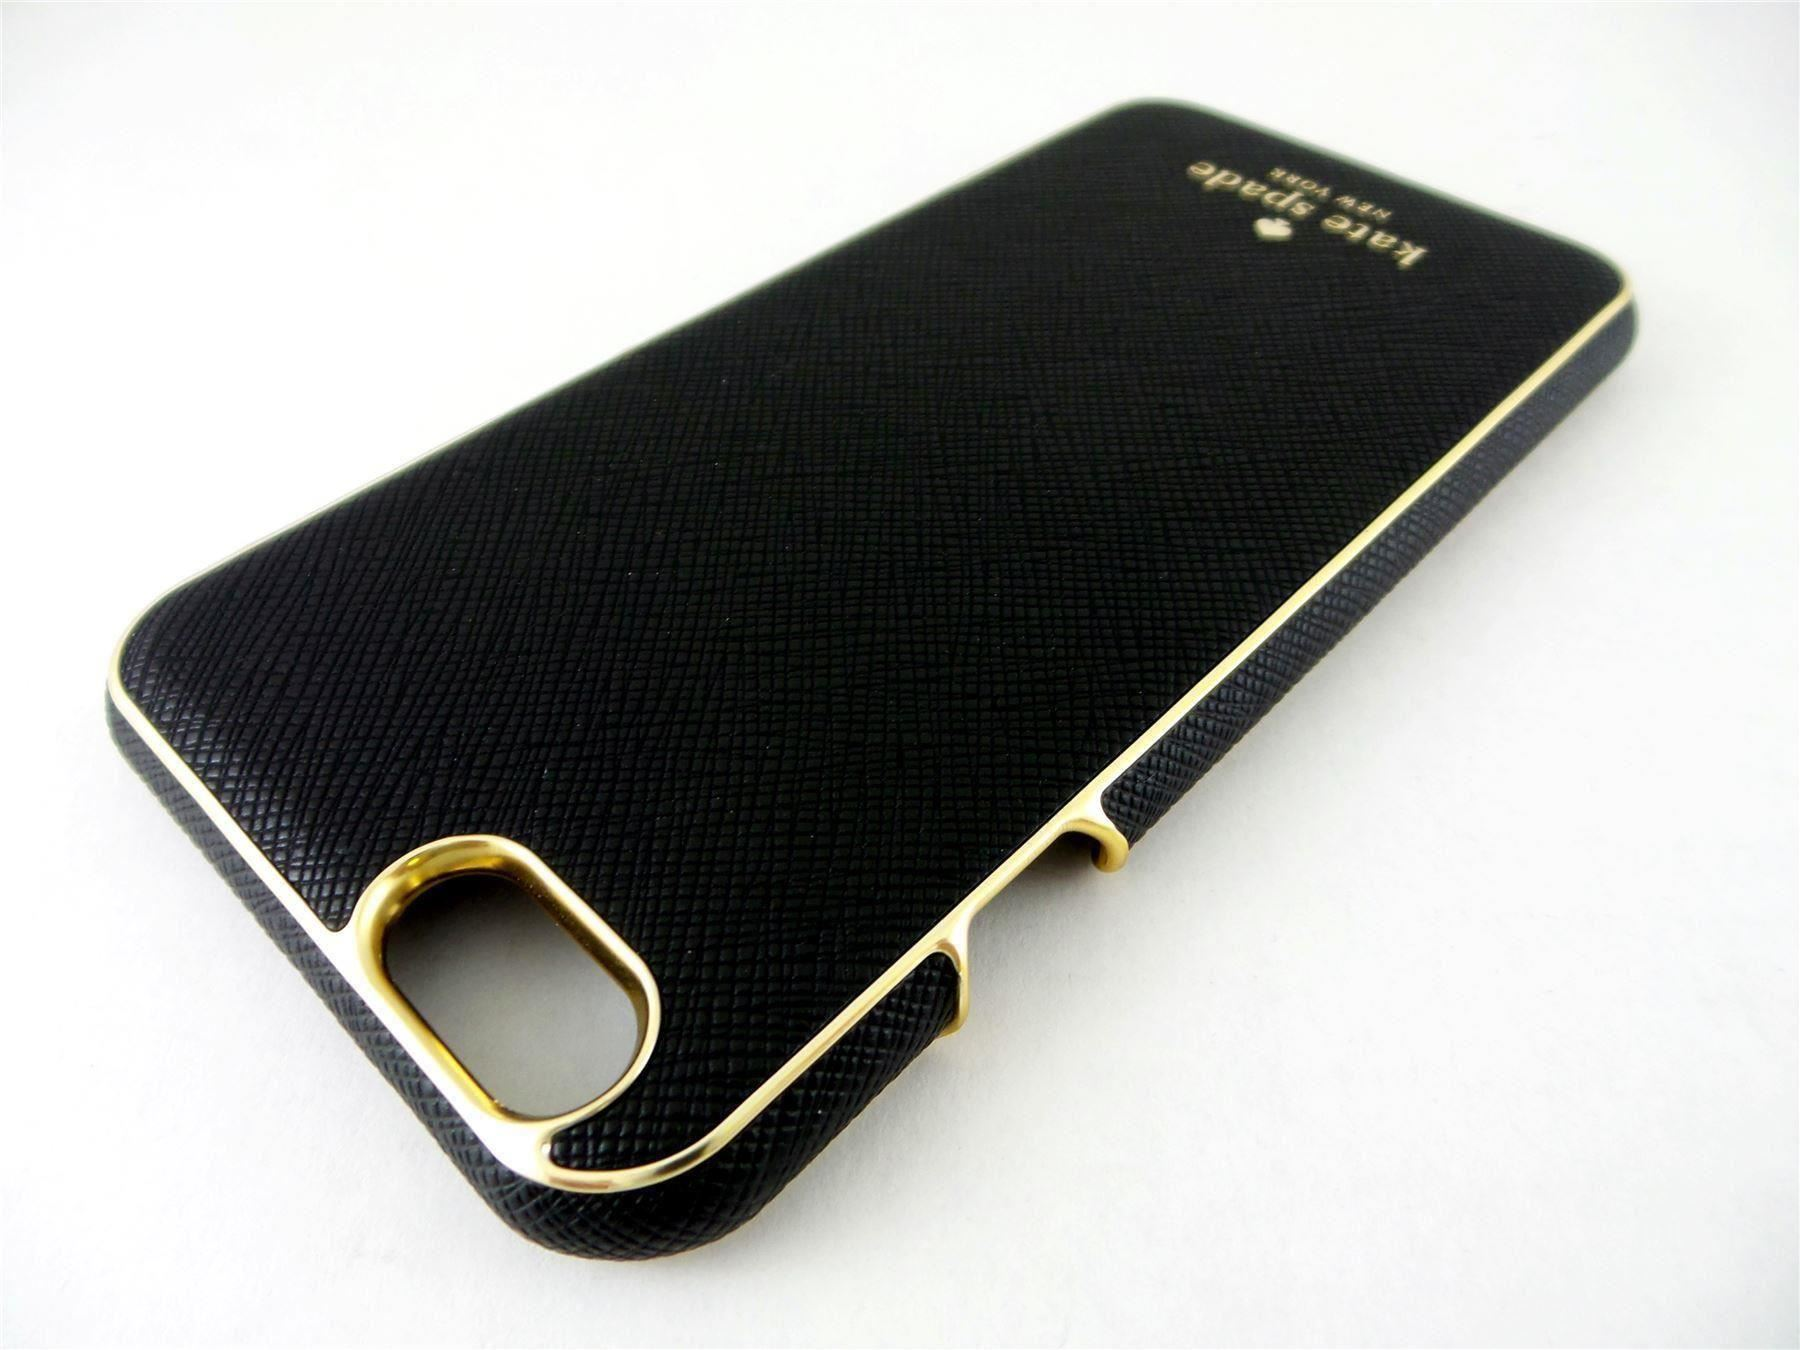 kate spade wrap case for apple iphone 6 6s black gold ksiph 032 blk v ebay. Black Bedroom Furniture Sets. Home Design Ideas